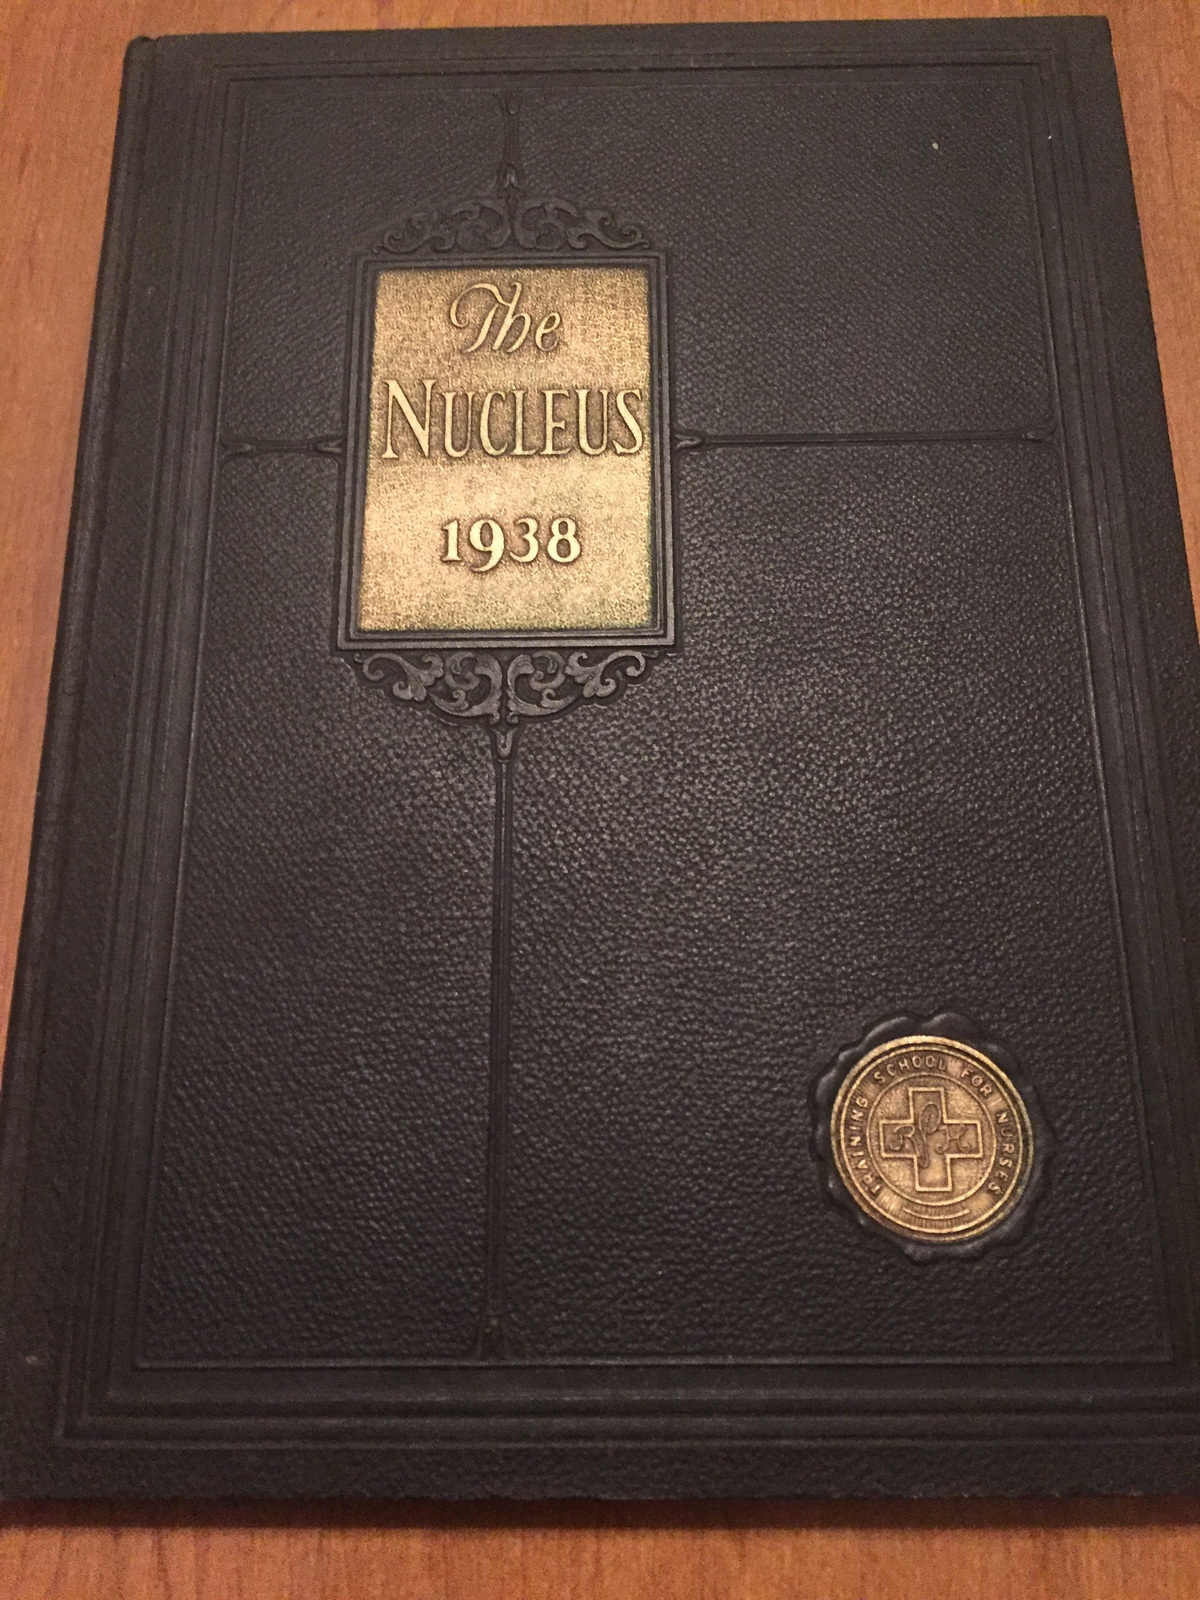 The Nucleus 1938 yearbook drh112